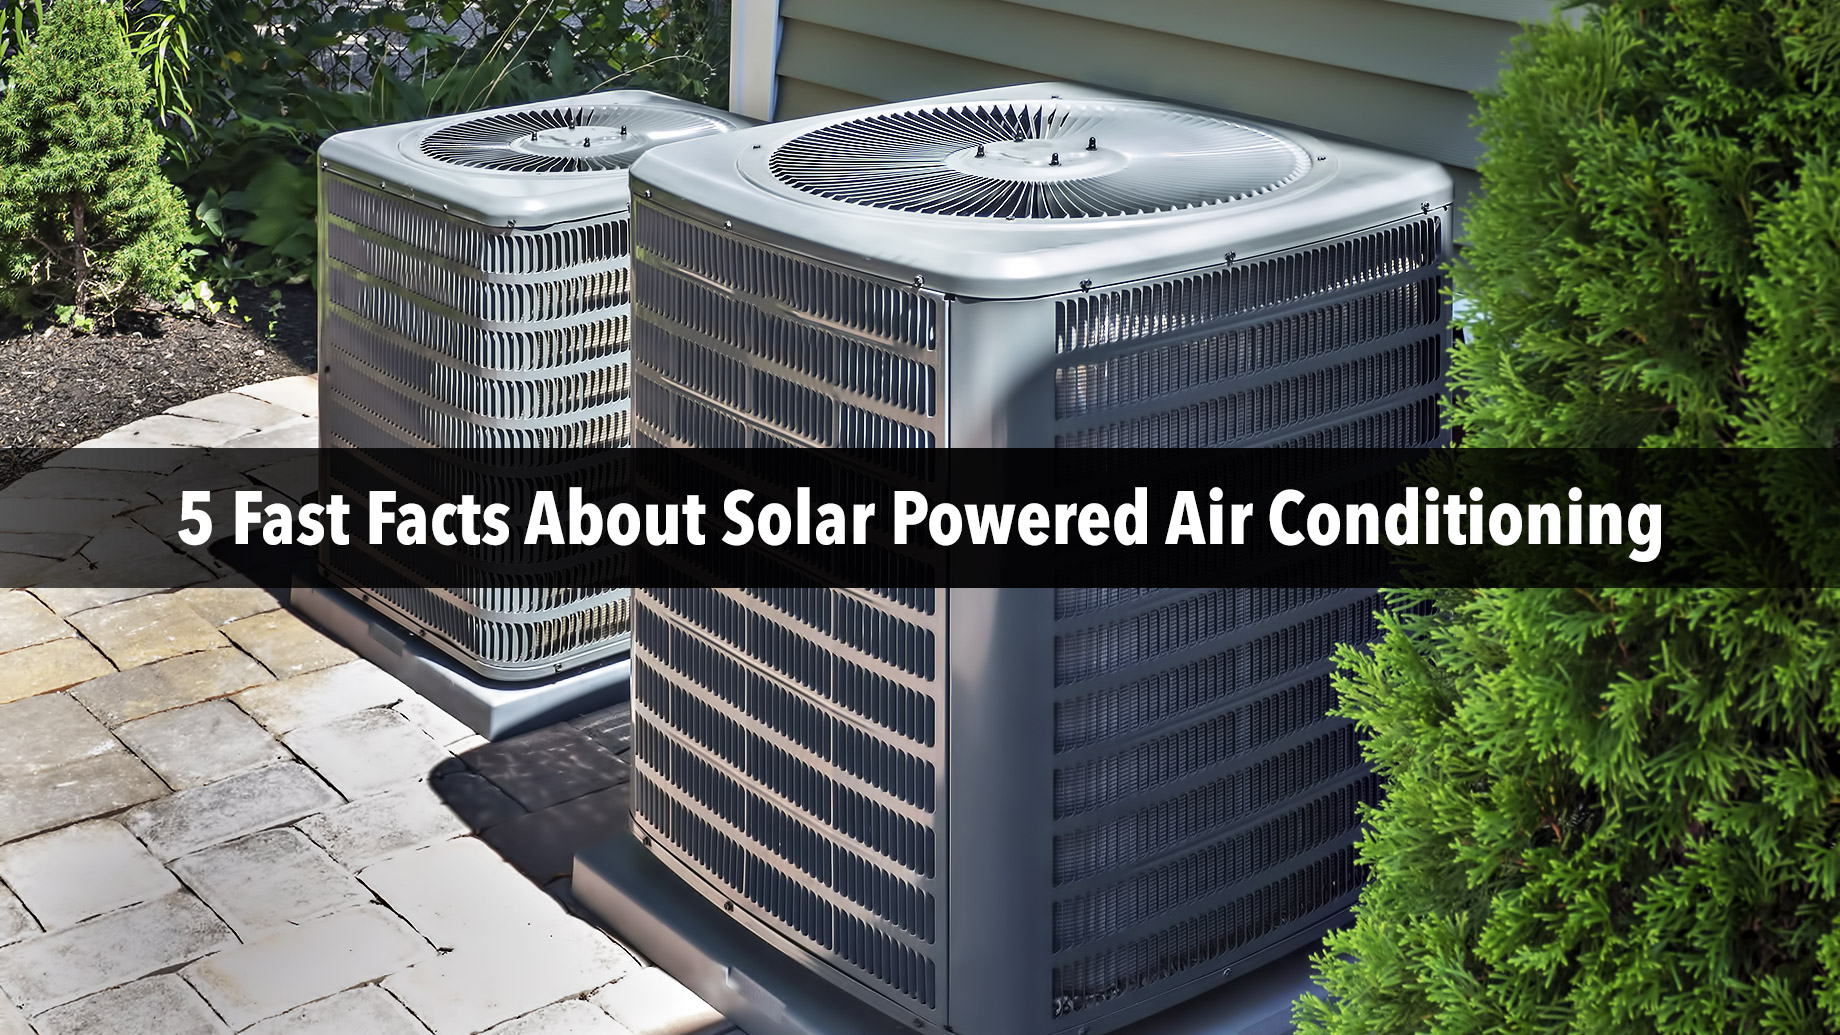 5 Fast Facts About Solar Powered Air Conditioning